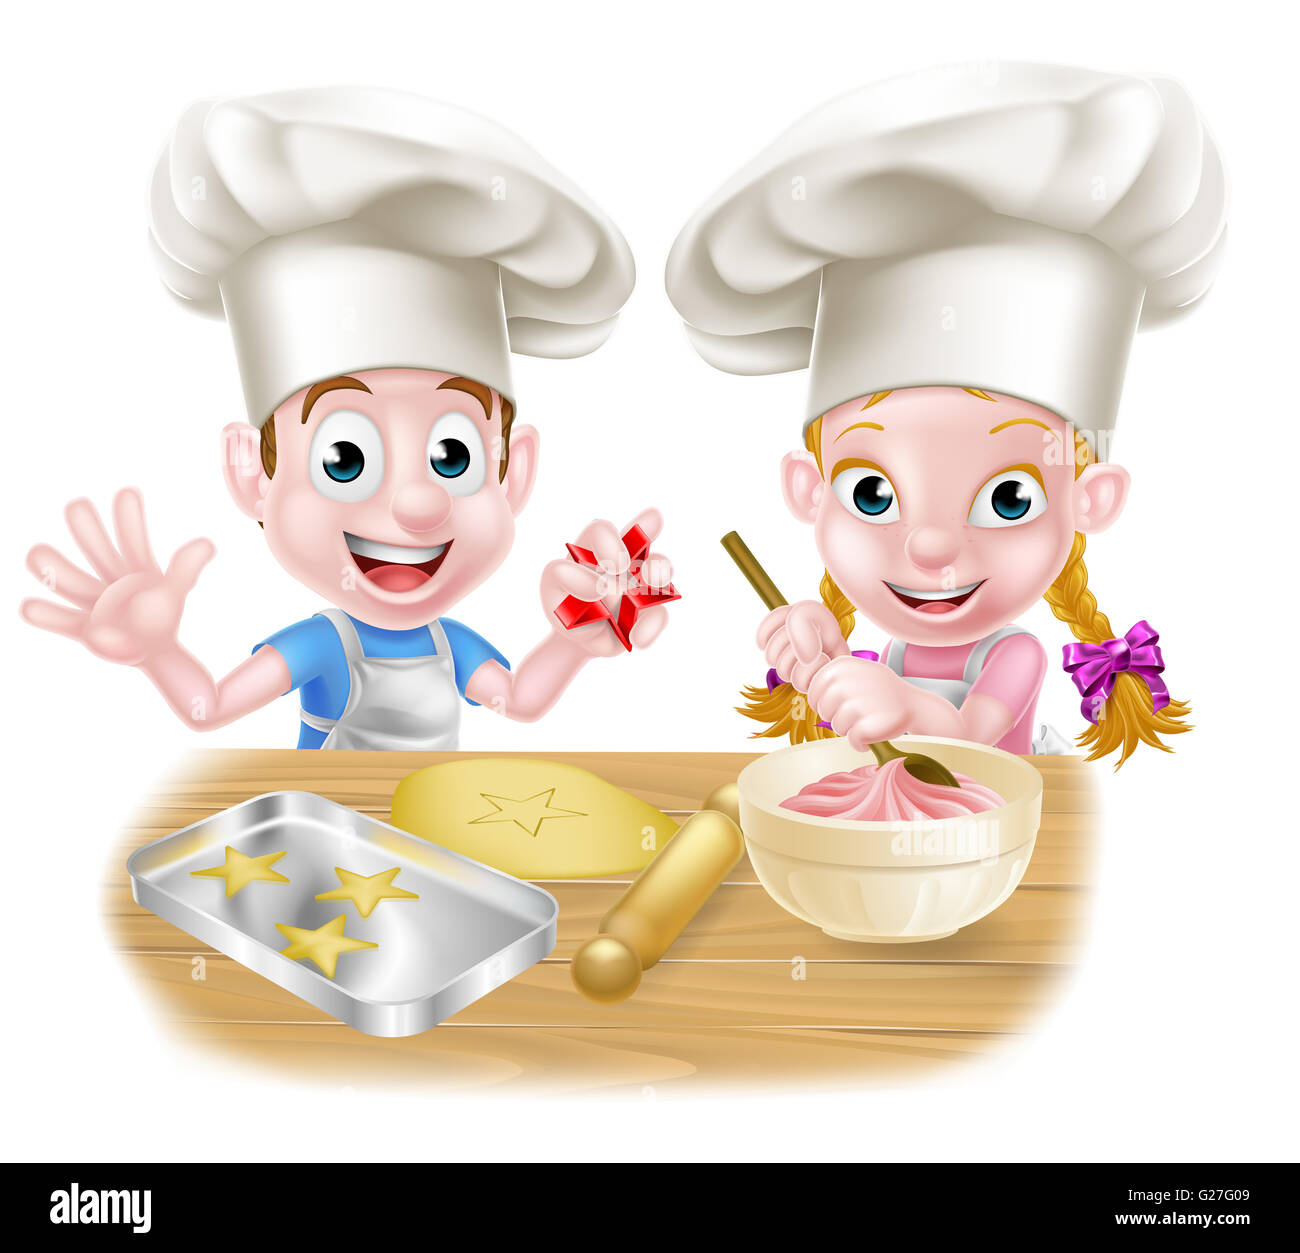 Kinder Kuchen Backen Cartoon Chef Kinder Backen Kuchen Und Kekse Stockfoto